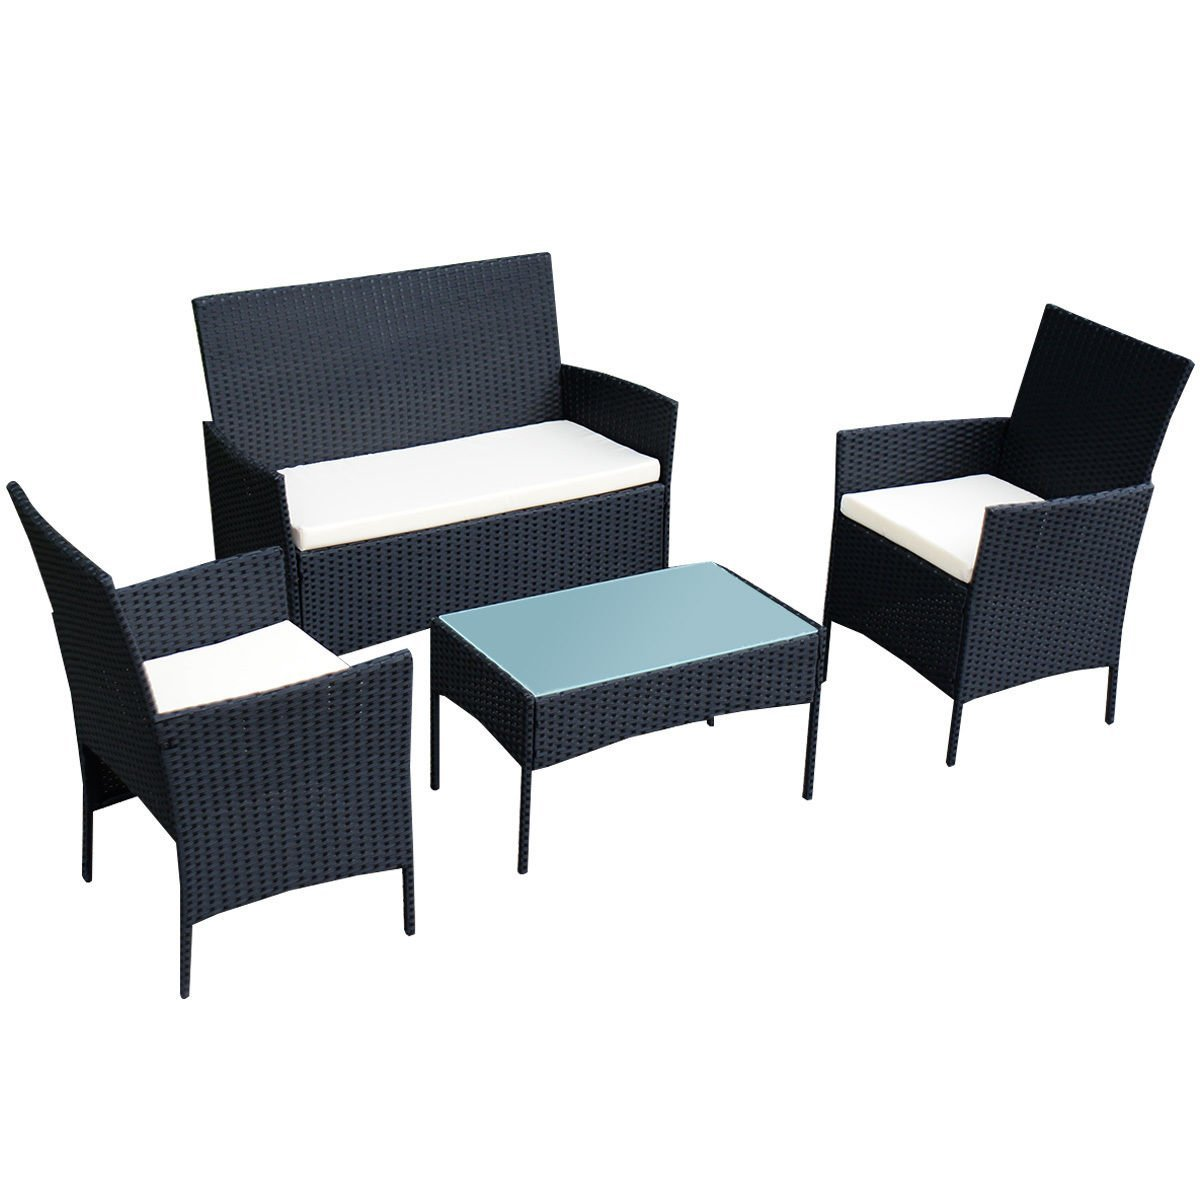 Amazon 4 piece furniture set for 150 crazy good deal for Furniture set deals